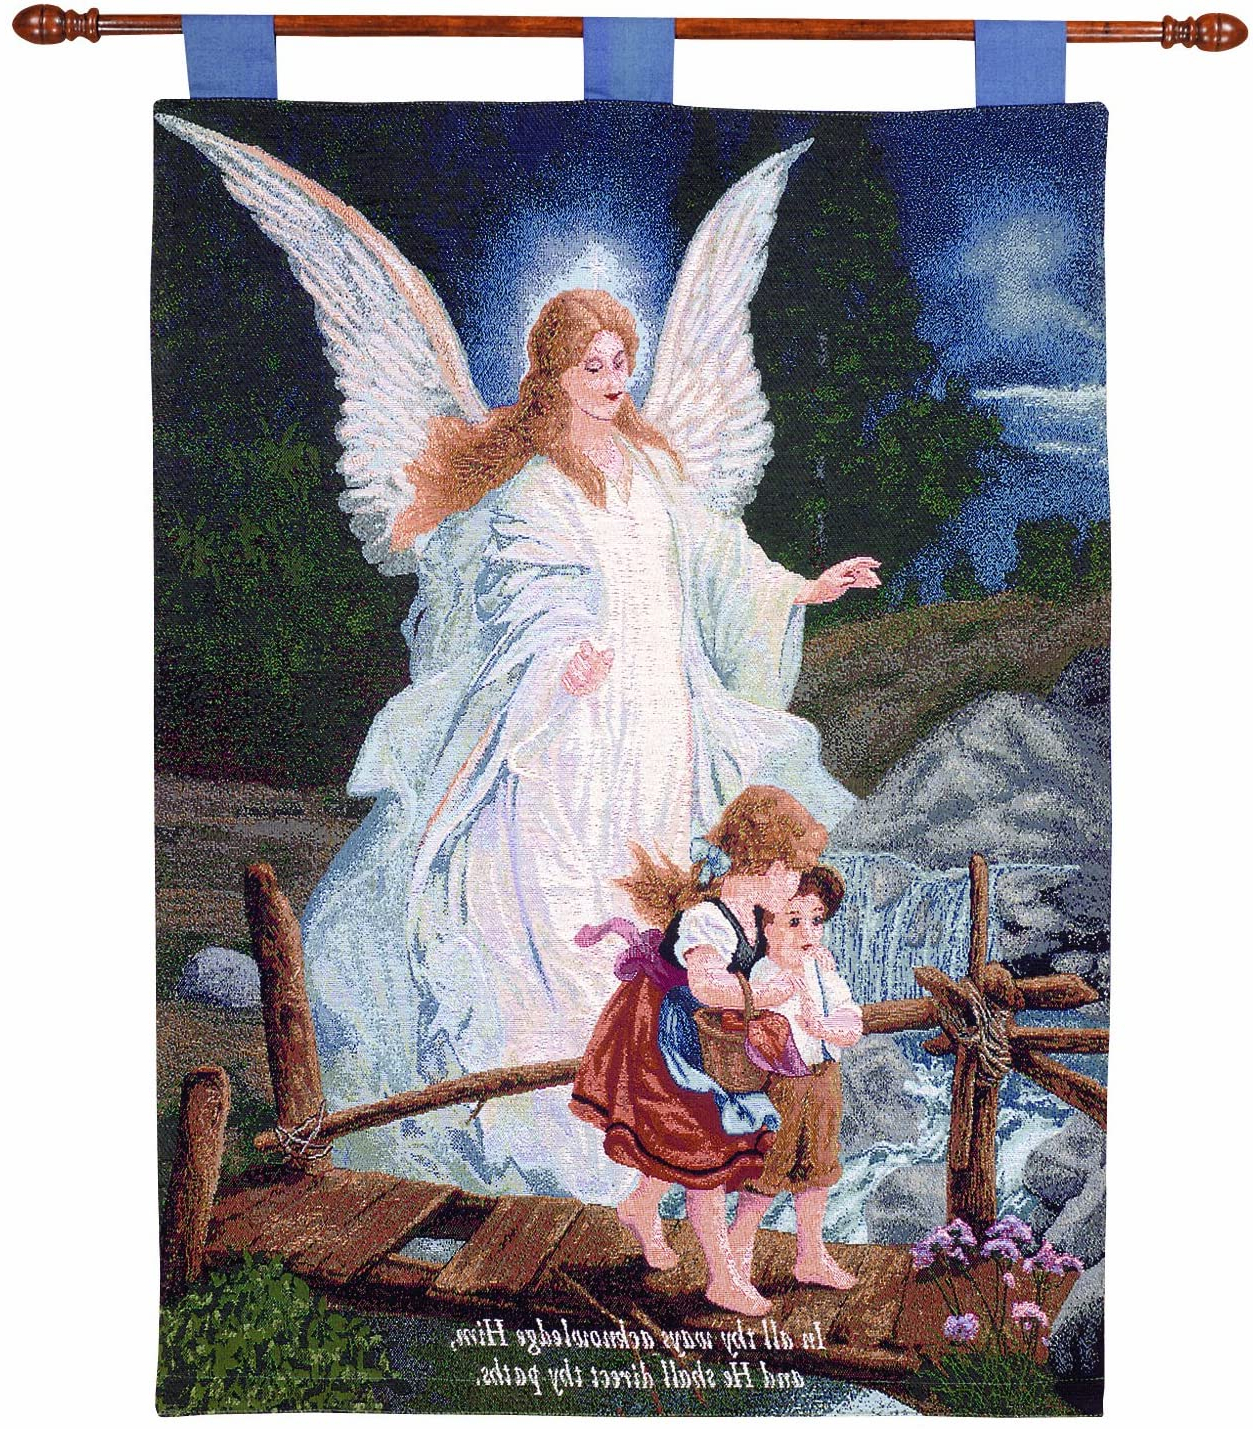 Preferred Blended Fabric Freedom Verse Tapestries And Wall Hangings Throughout Manual Inspirational Collection 26 X 36 Inch Wall Hanging And Finial Rod, Direct Thy Paths With Verse (View 5 of 20)